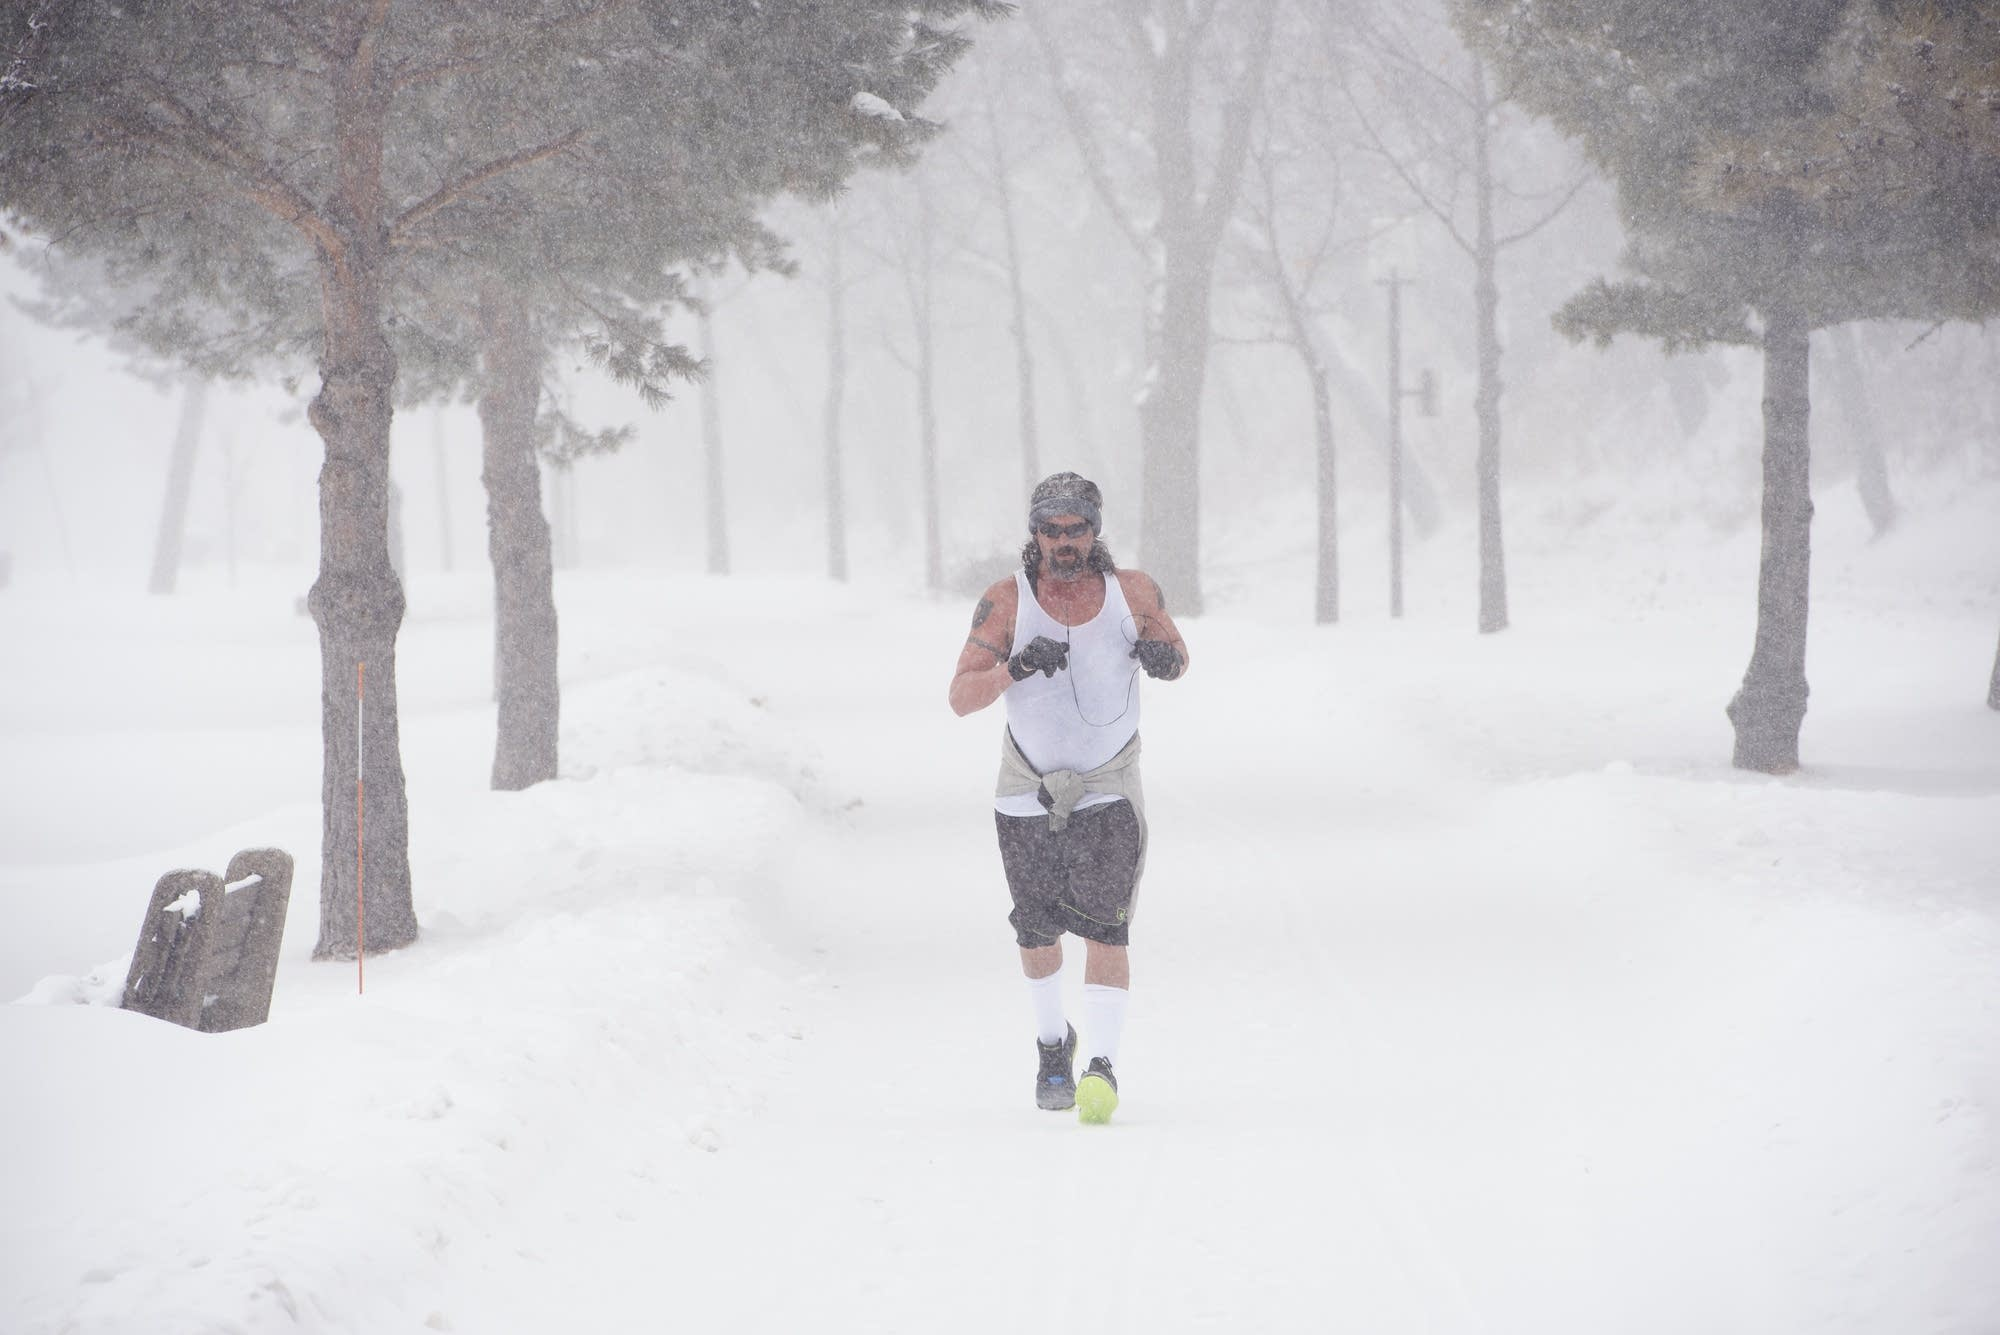 Unperturbed by the day's snowy weather, a man runs along Lake Calhoun.